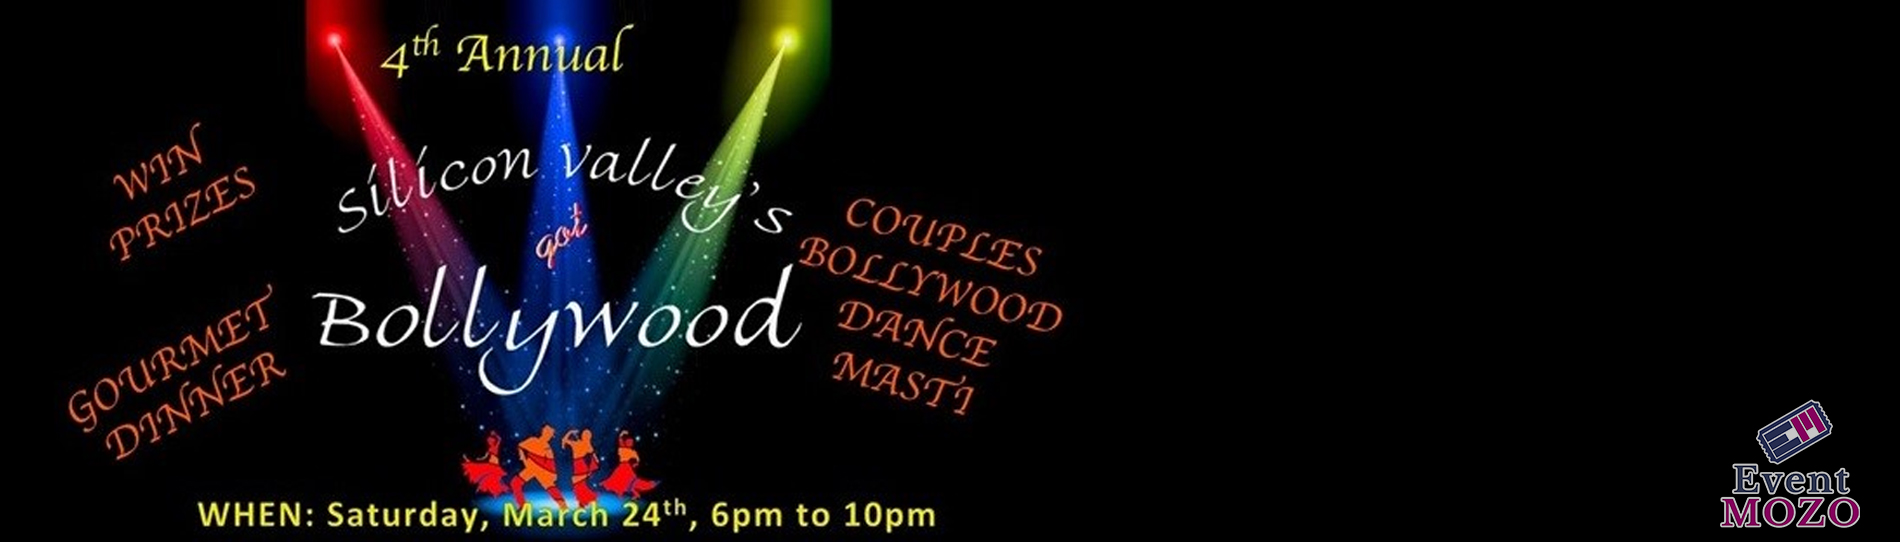 EventMozo Silicon Valley's got Bollywood annual competition 2018